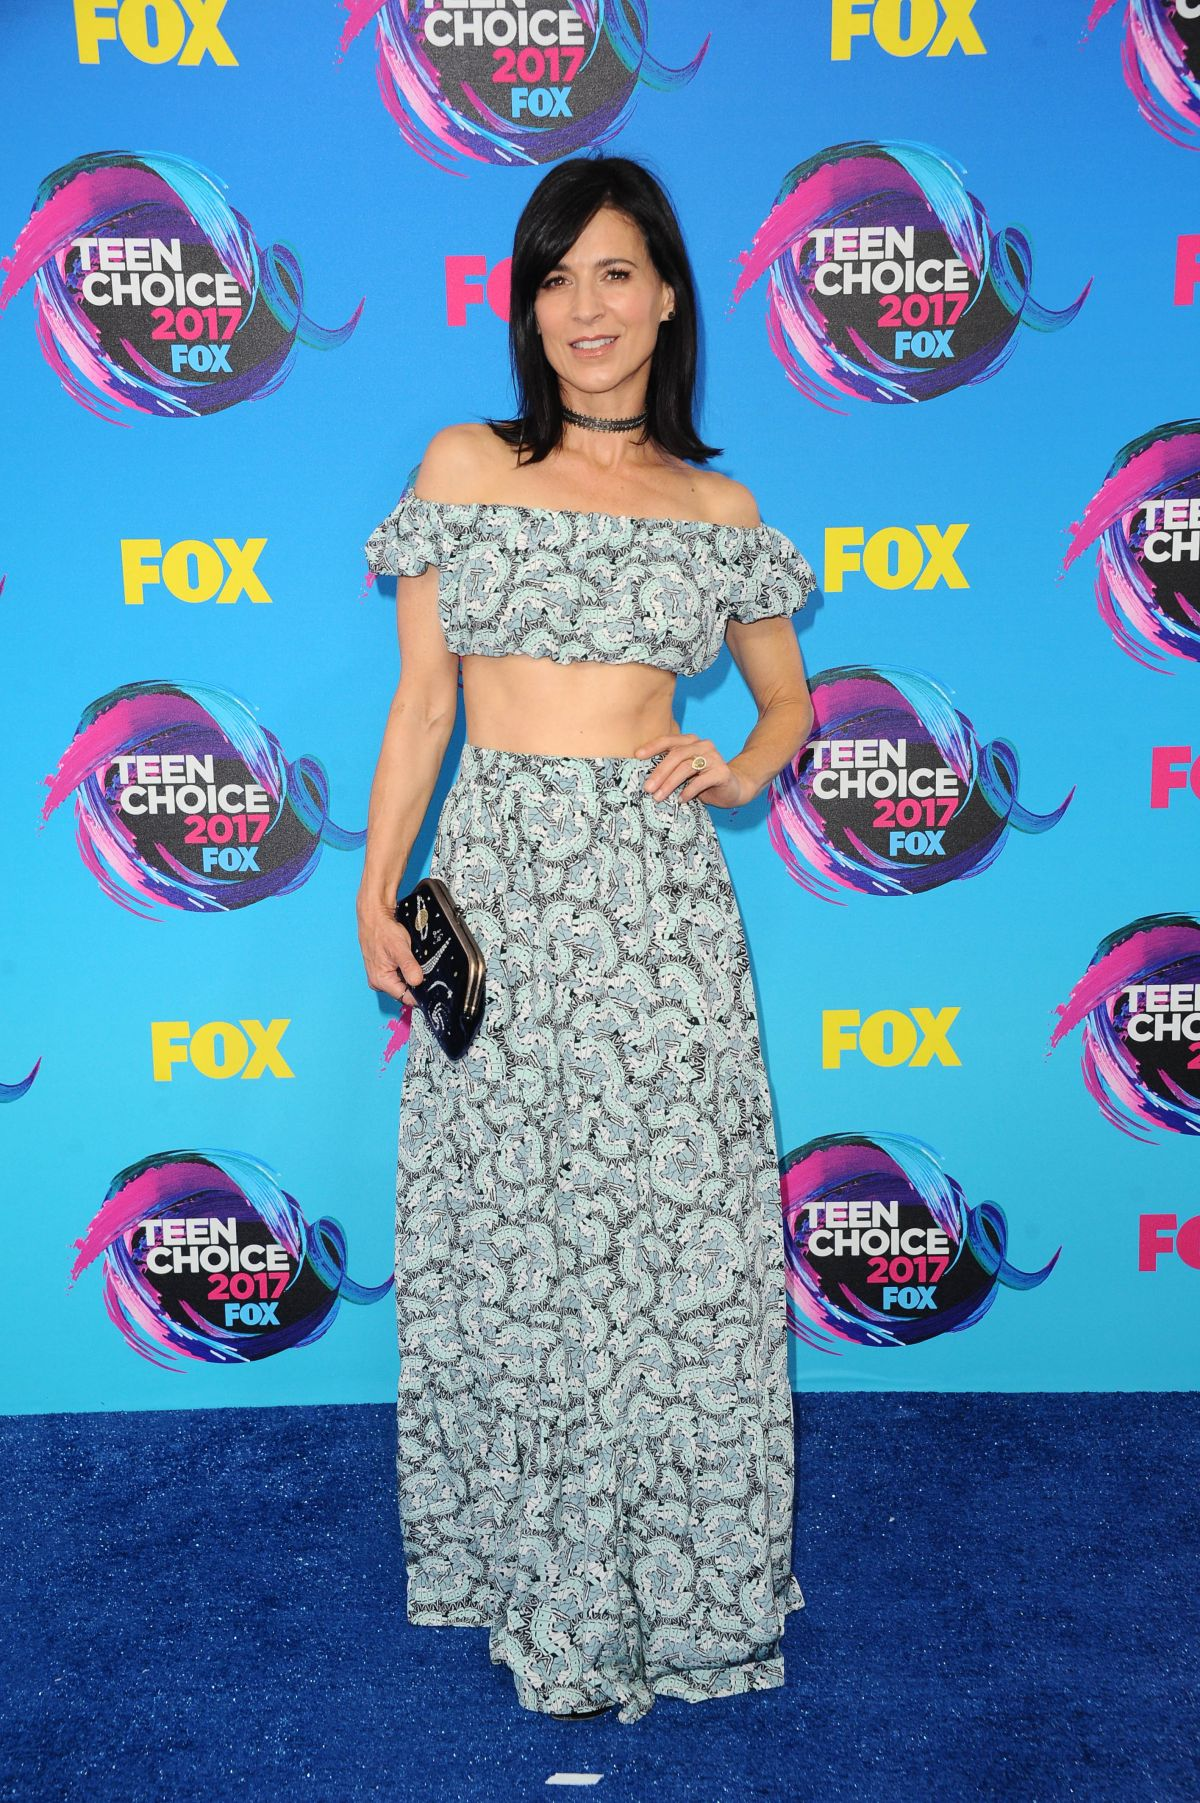 PERREY REEVES at Teen Choice Awards 2017 in Los Angeles 08/13/2017